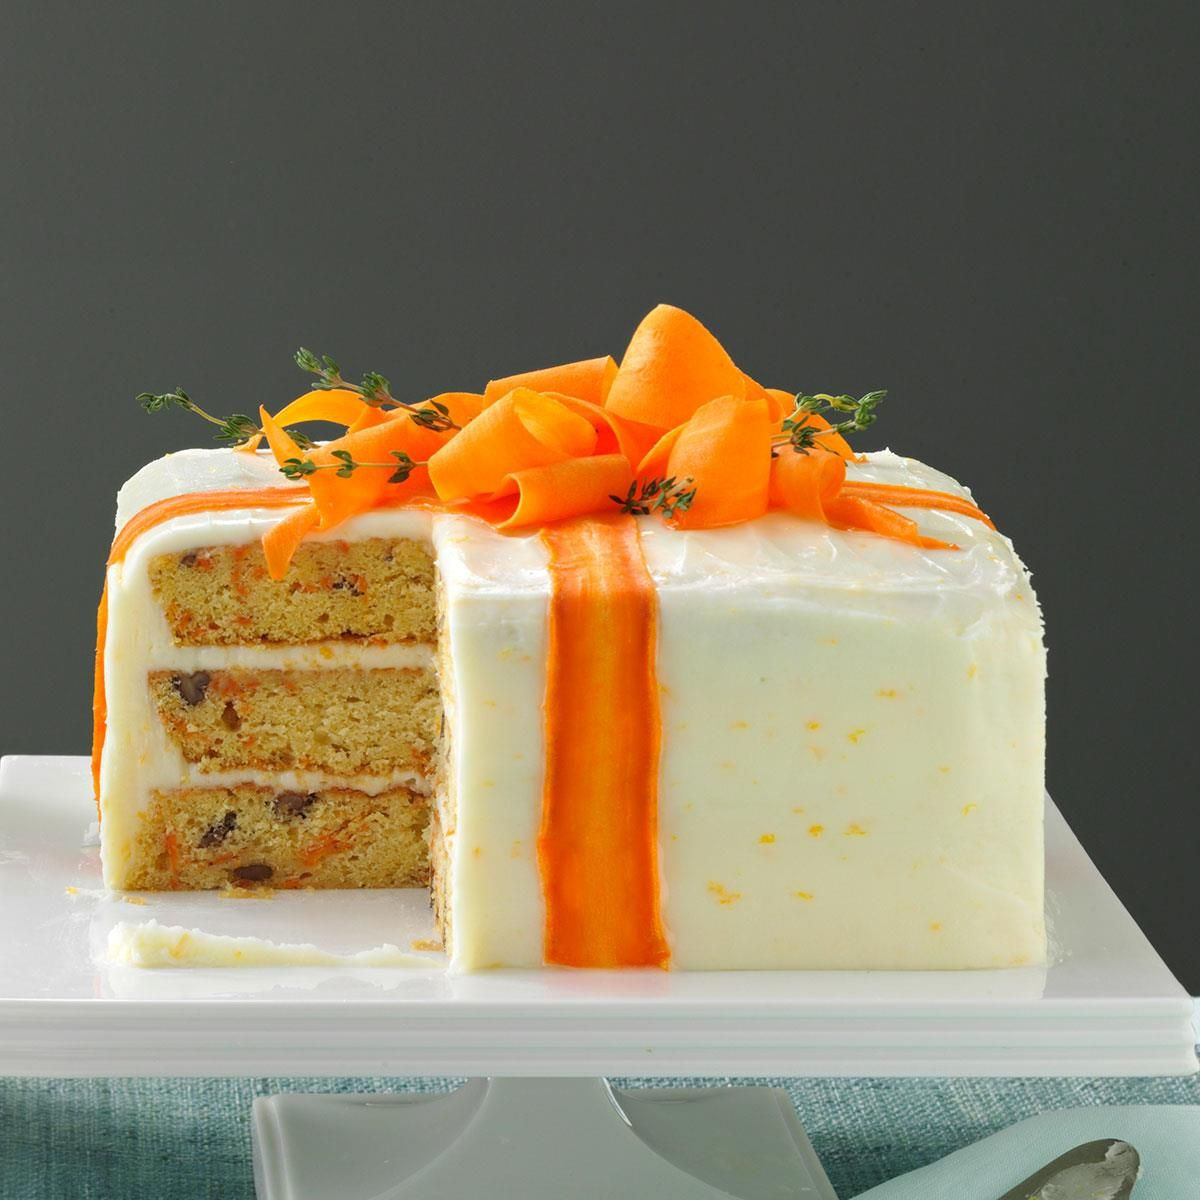 Three Layered Carrot Cake Recipe Easy Cake Decorating Carrot